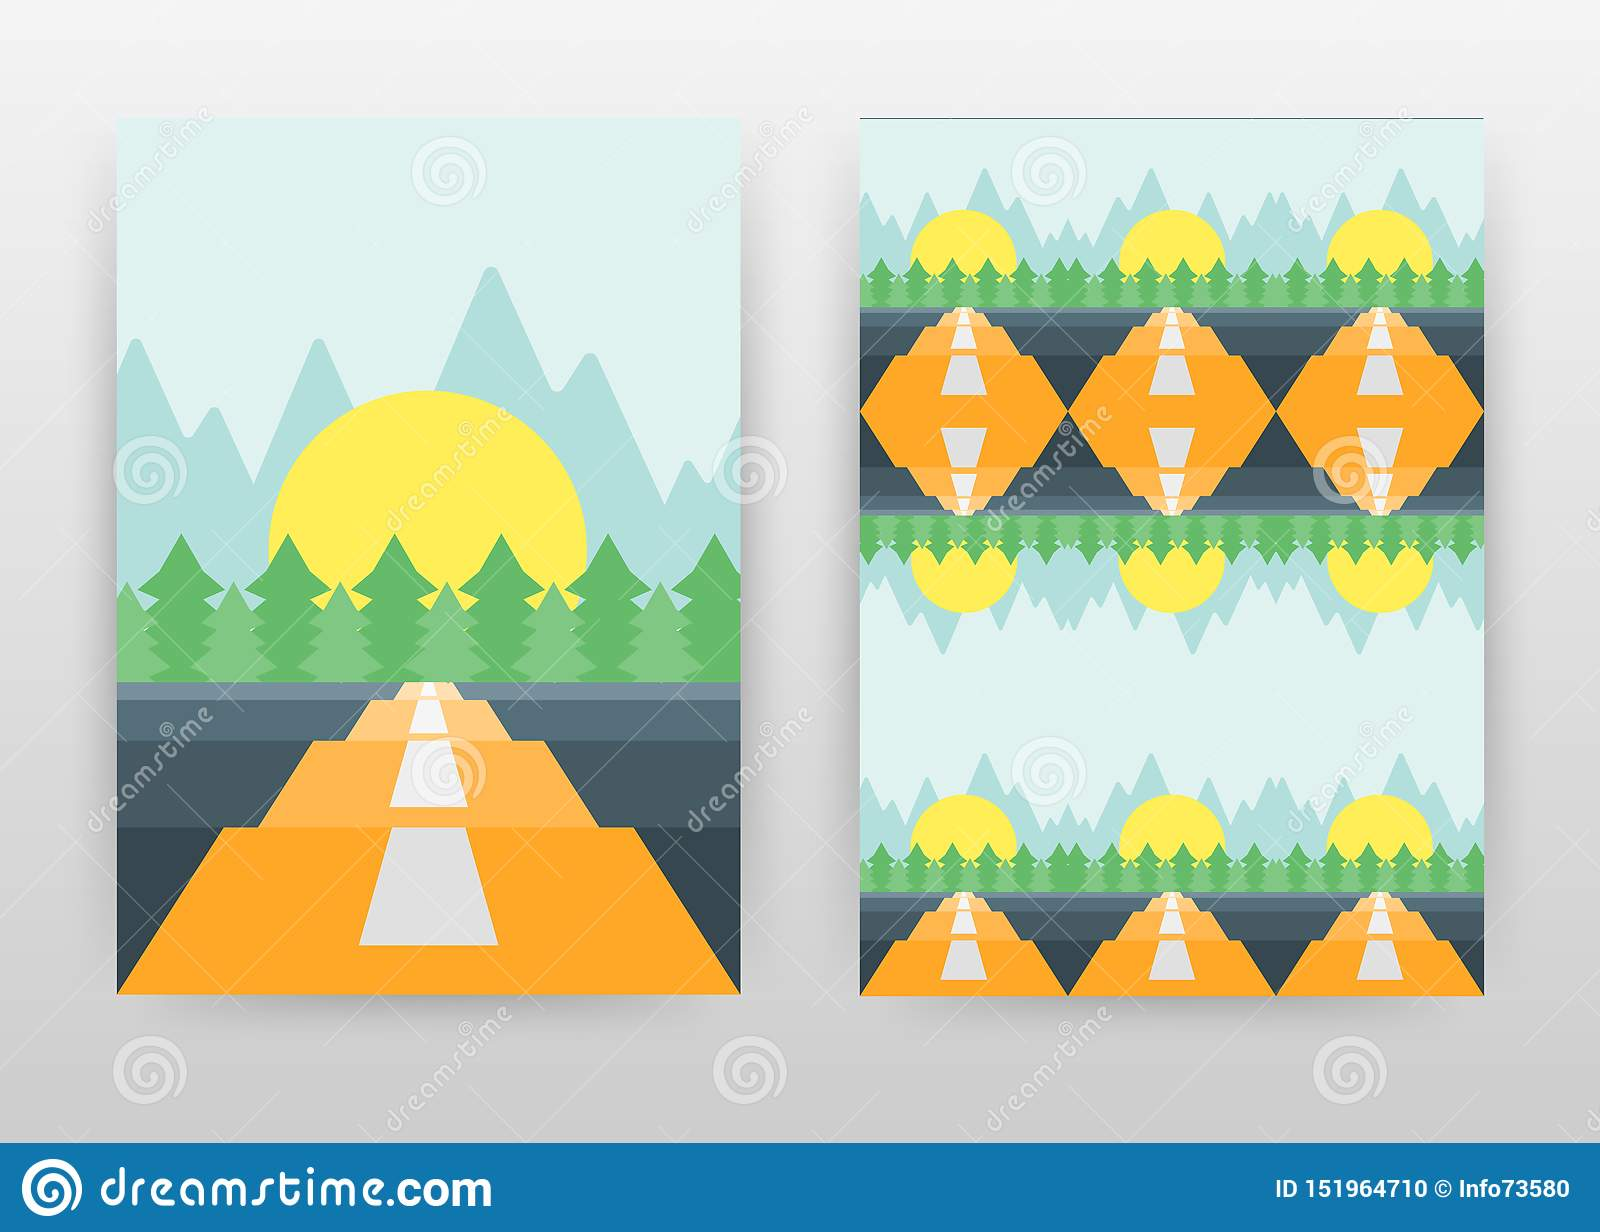 Landscape of road, sun, pine trees and mountains. business design brochure, flyer, poster. Long way landscape background vector